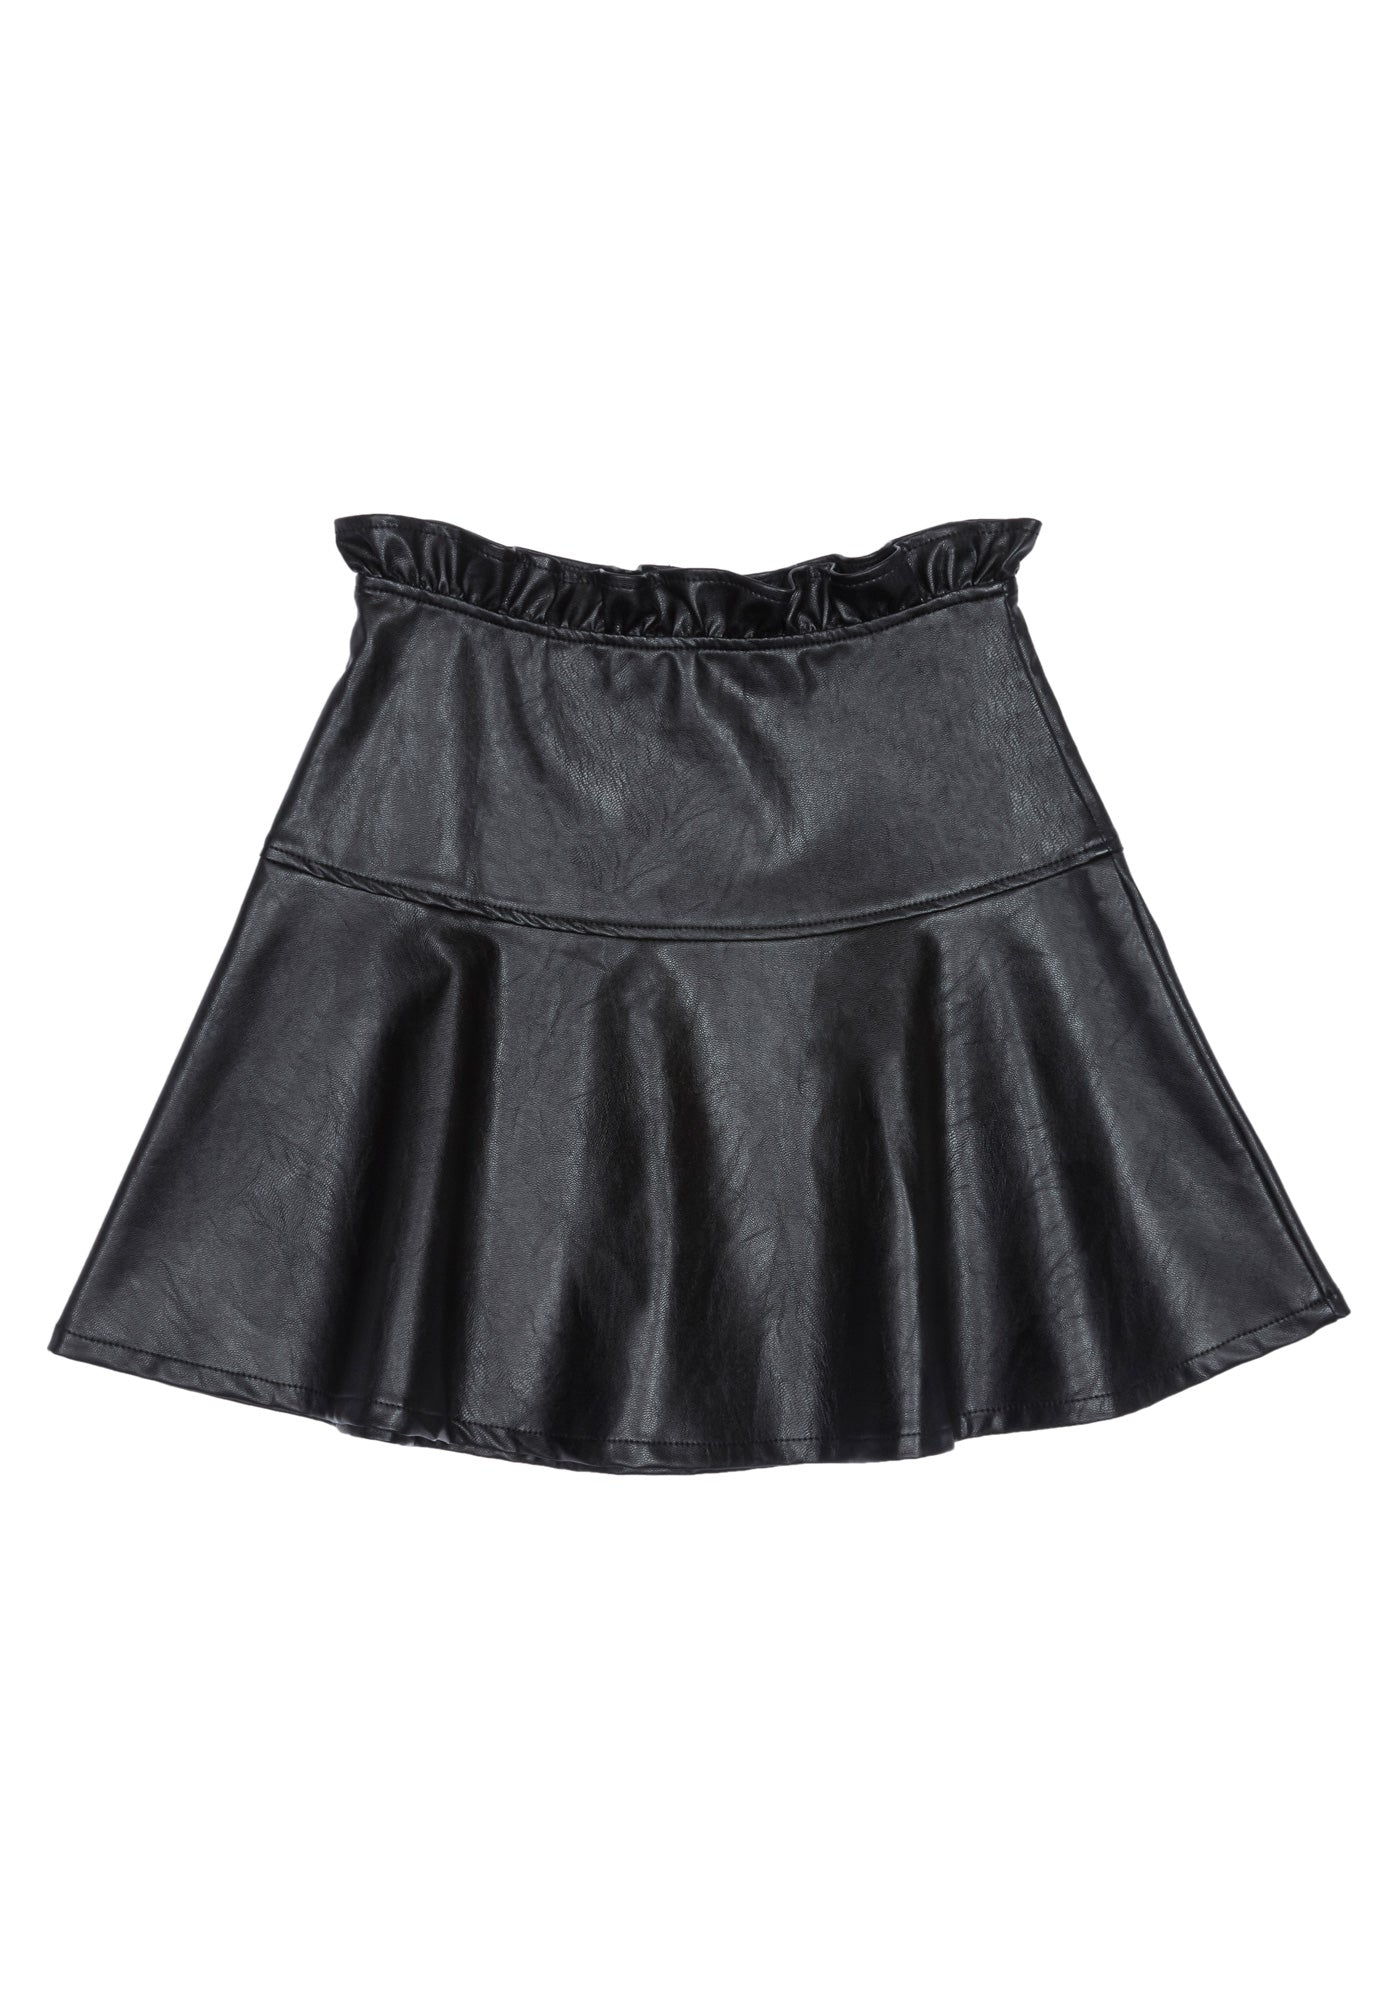 Bebe Women's Girls Faux Leather Skirt, Size 10 in Black Polyurethane